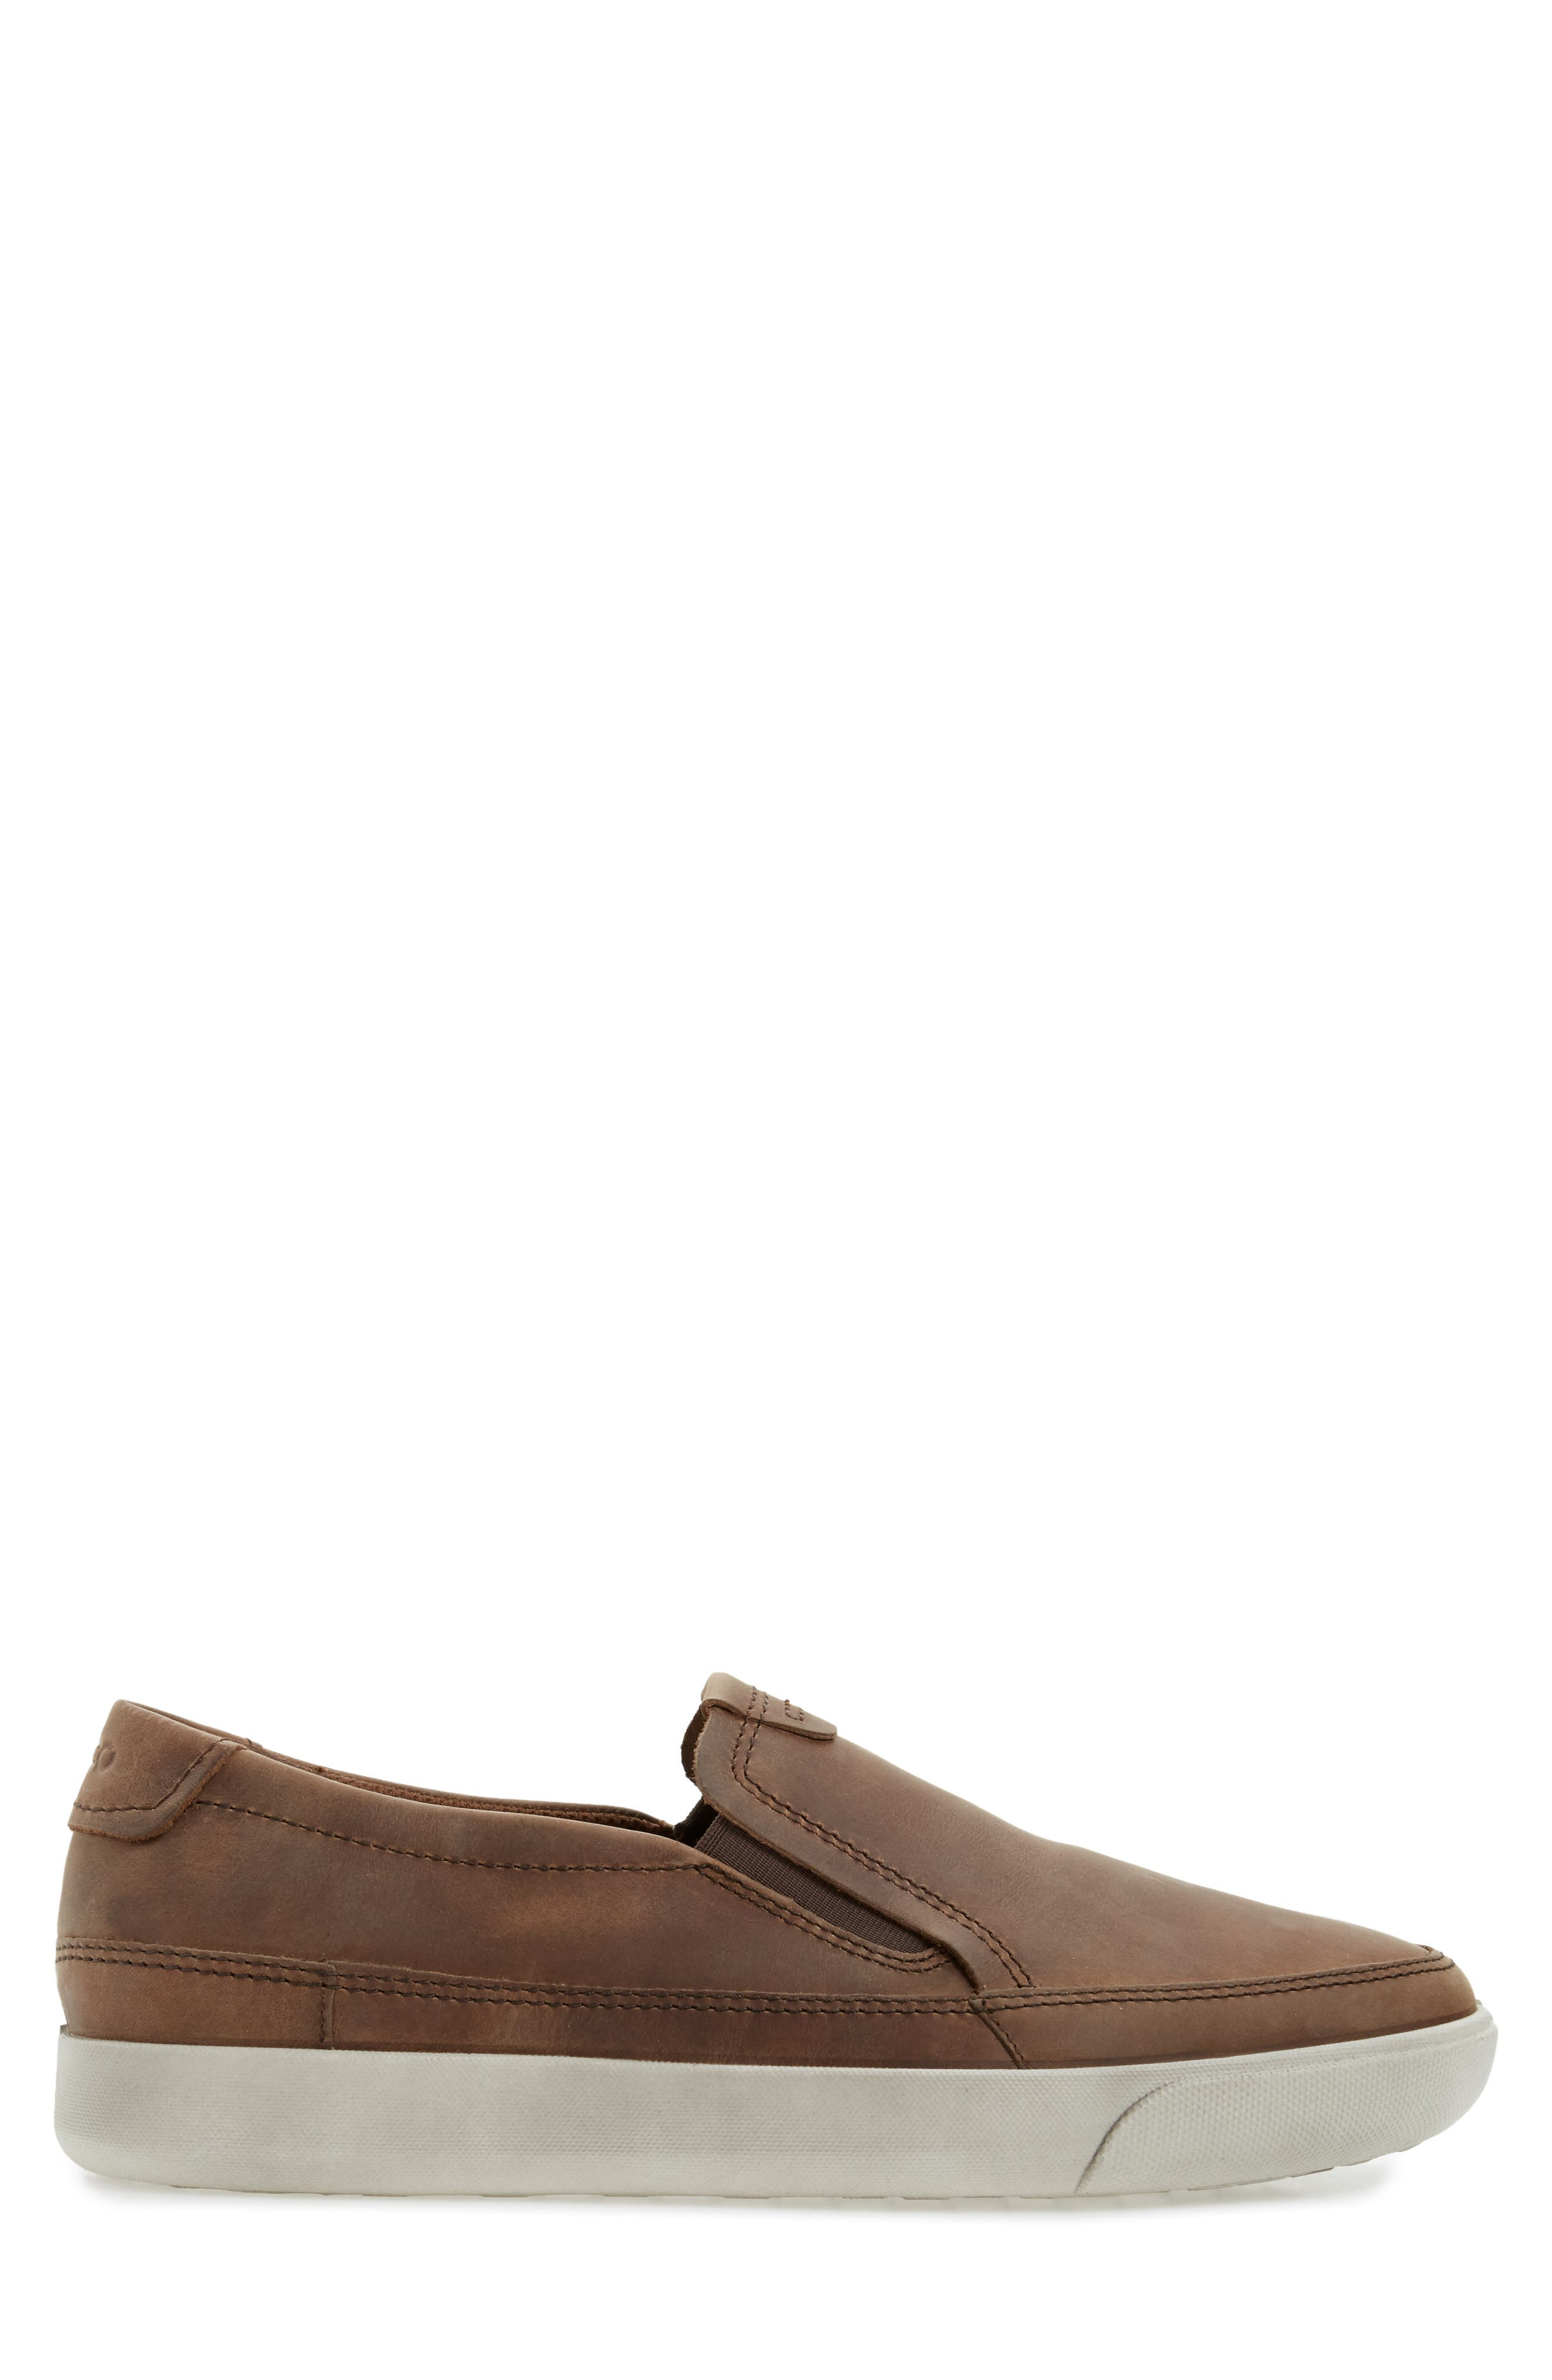 'Gary' Slip-On,                             Alternate thumbnail 3, color,                             COCOA BROWN LEATHER